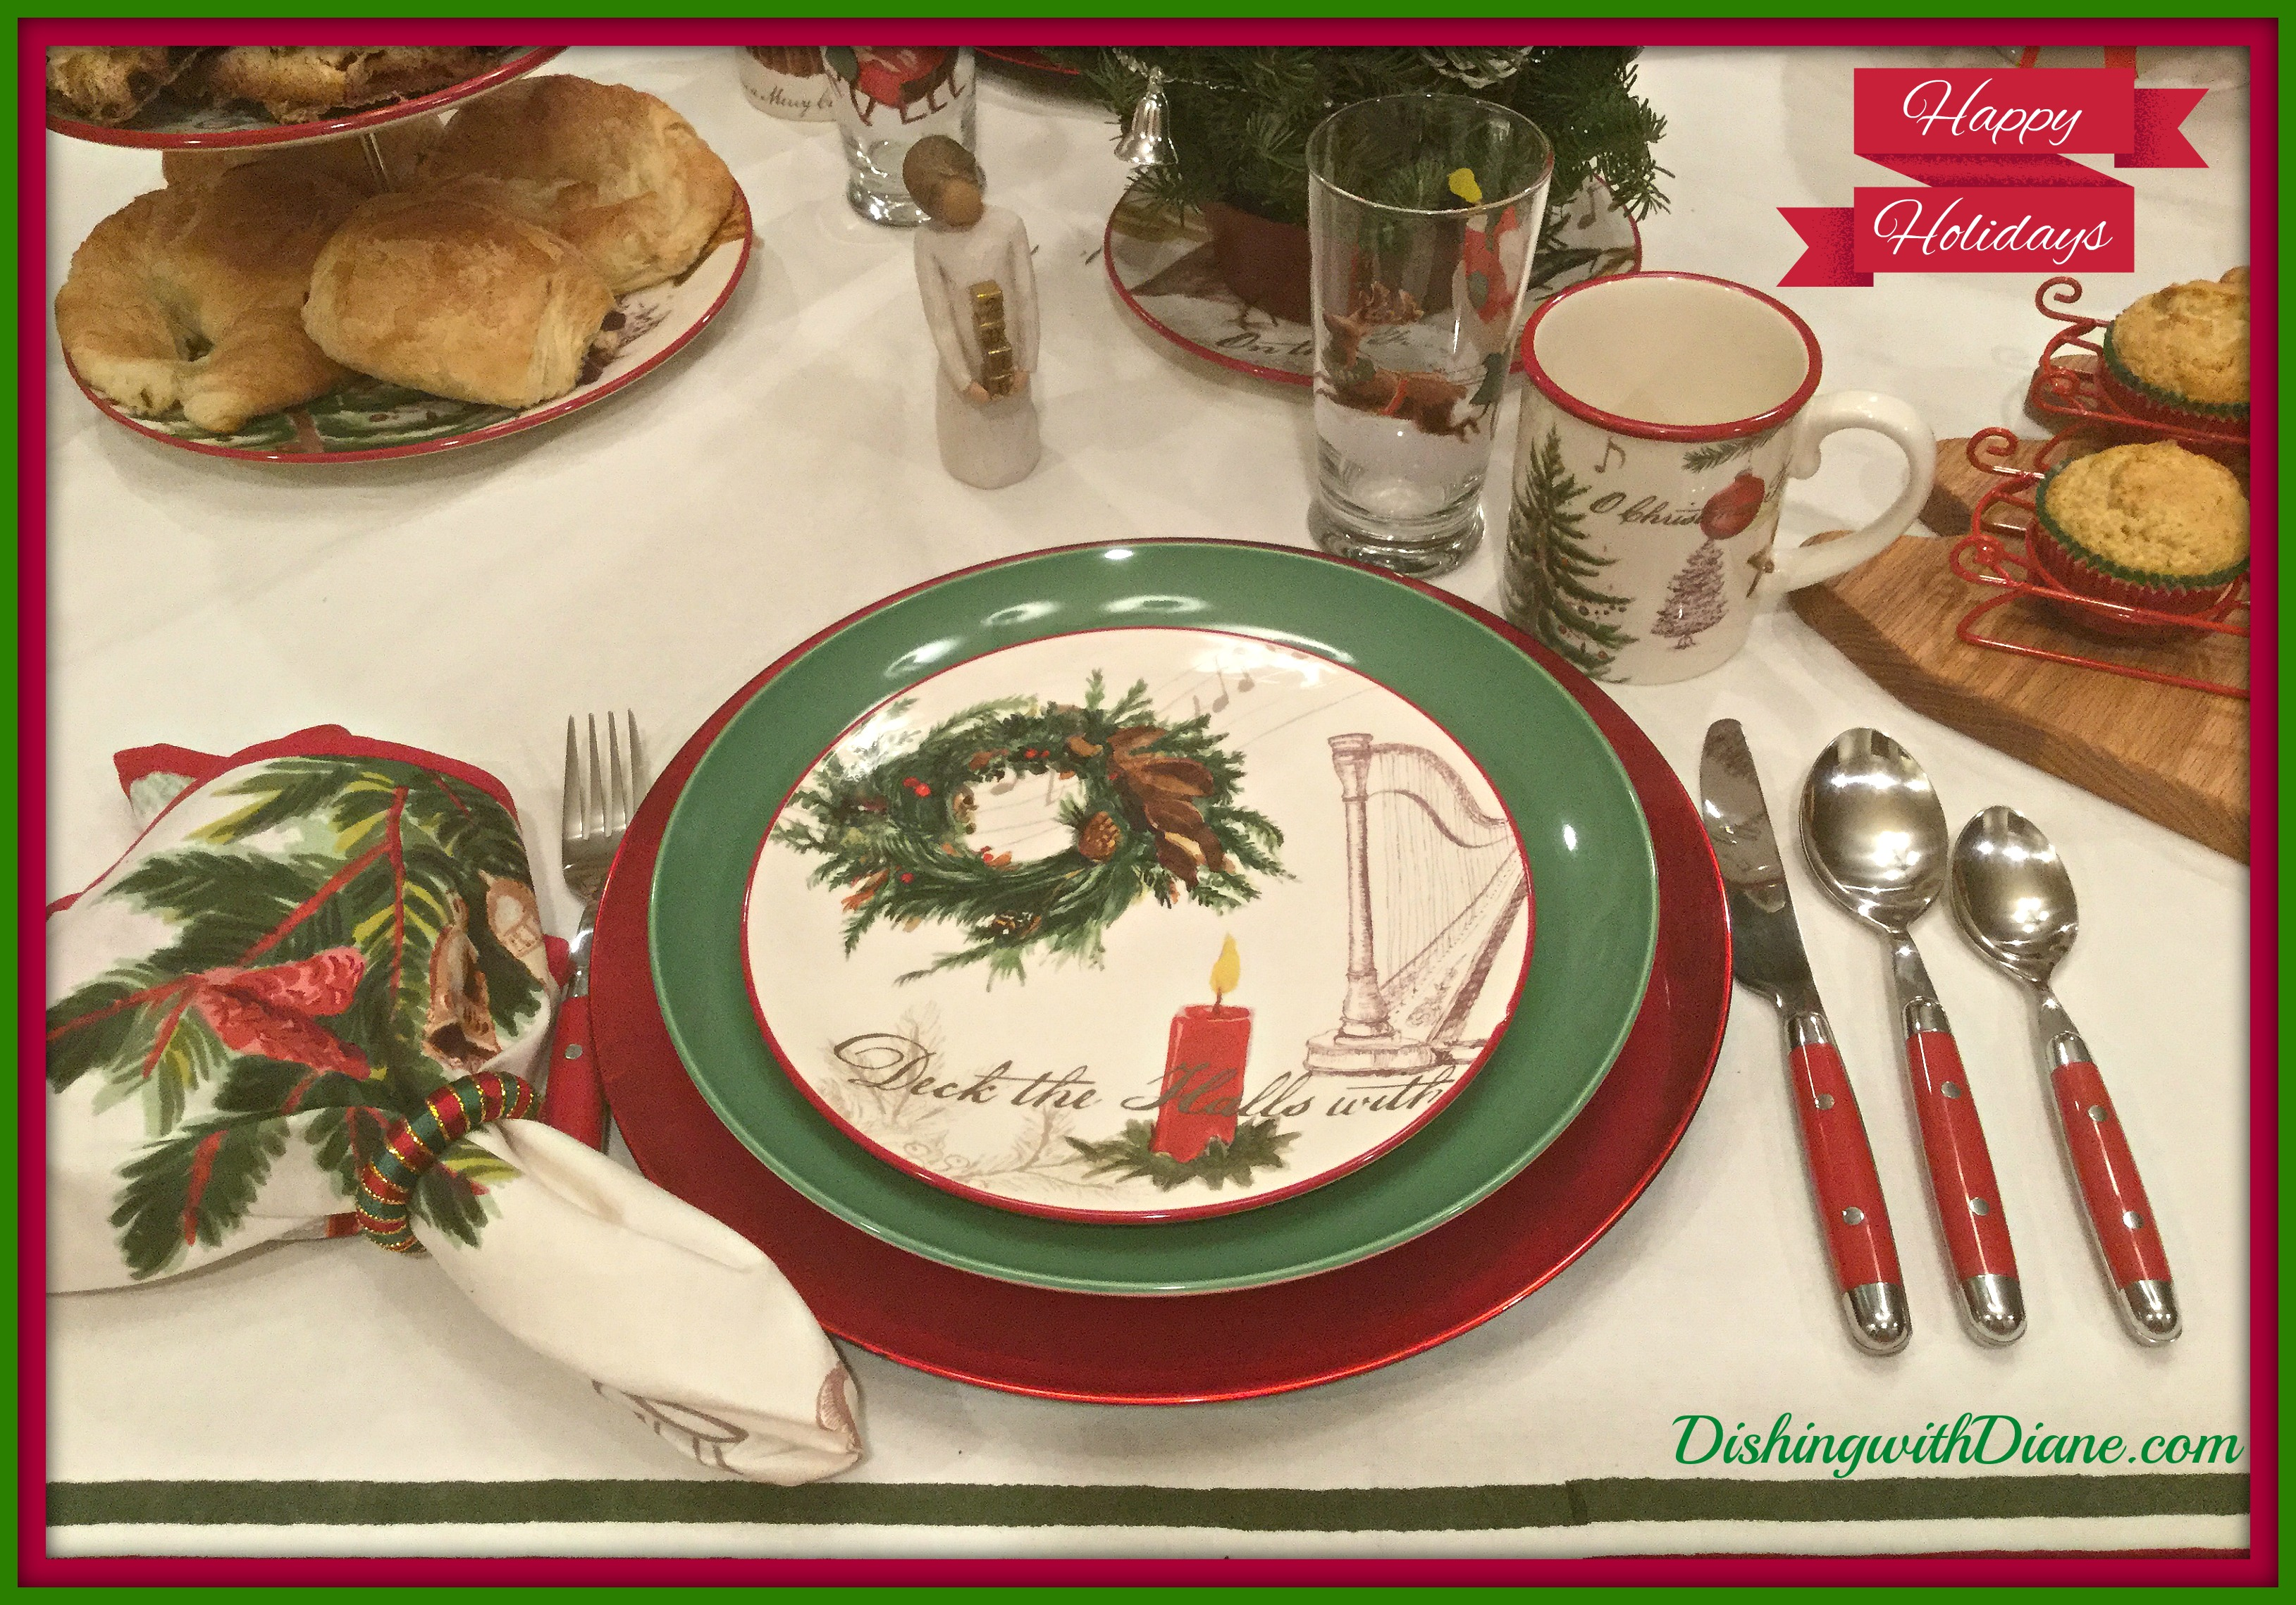 2016-12-26-22-43-15-place-setting